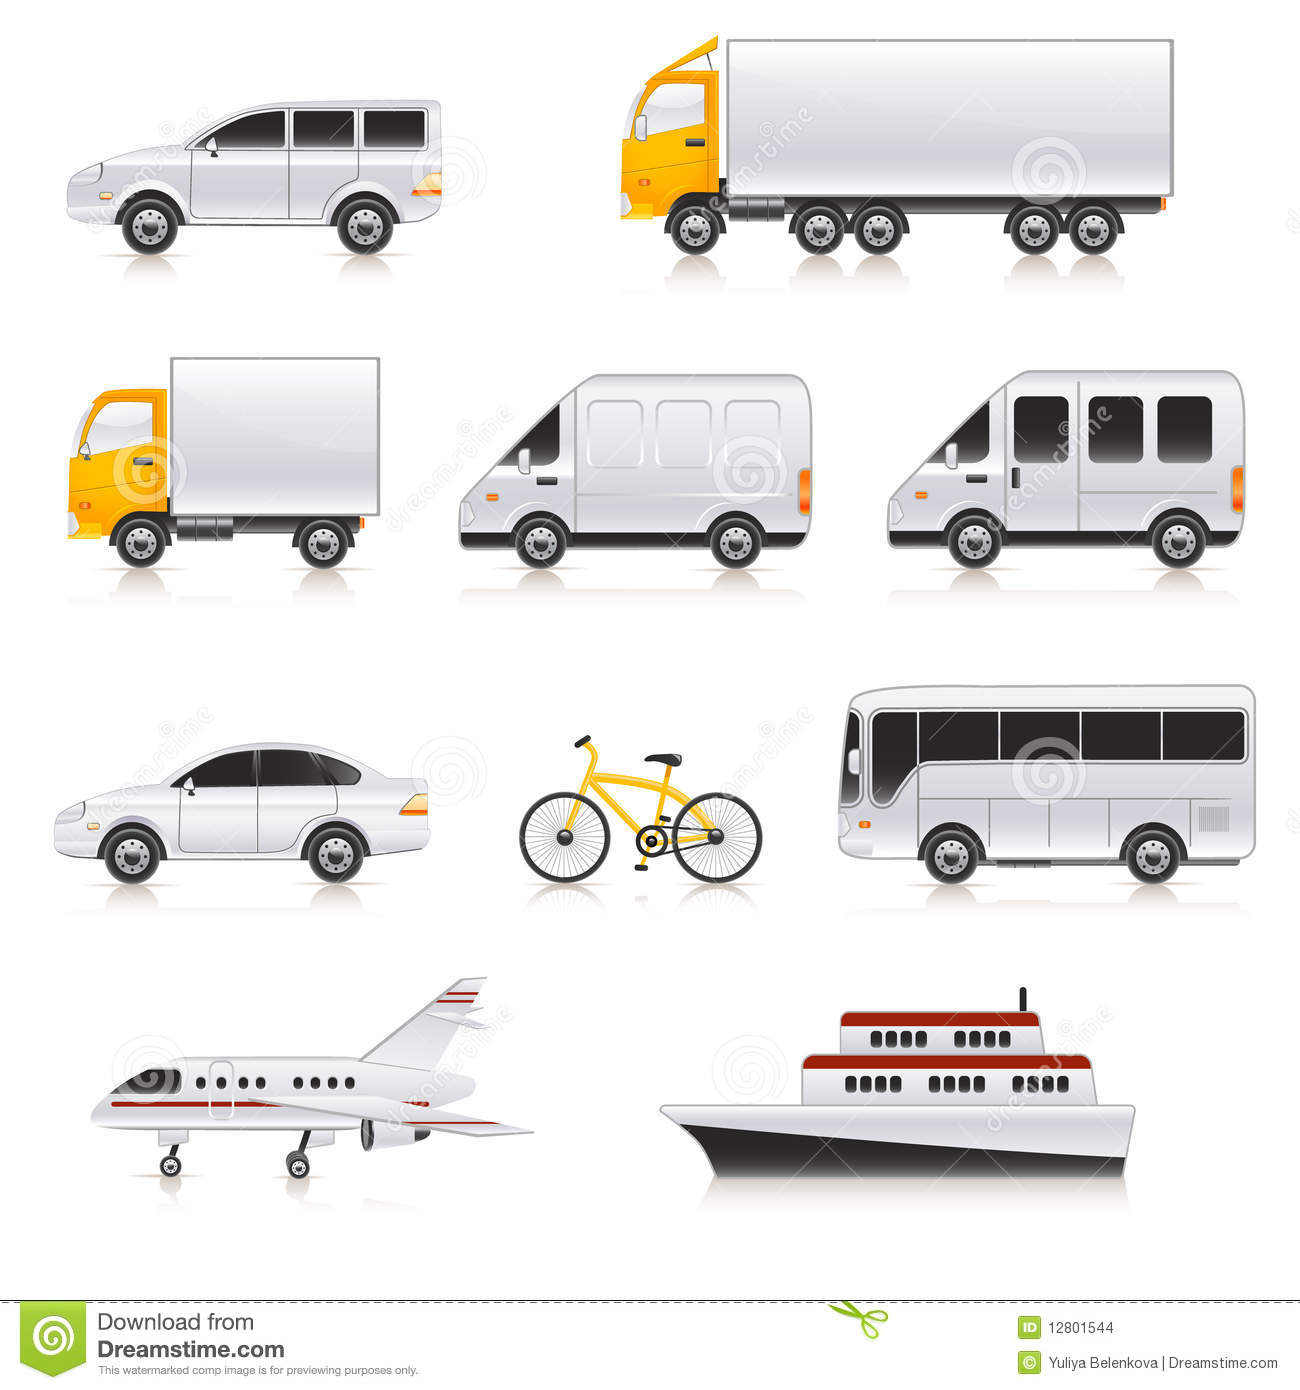 Drawing human ear royalty free stock photography image 25570937 - Transport Icons Stock Images Transport Icons Ear And Sound Waves Royalty Free